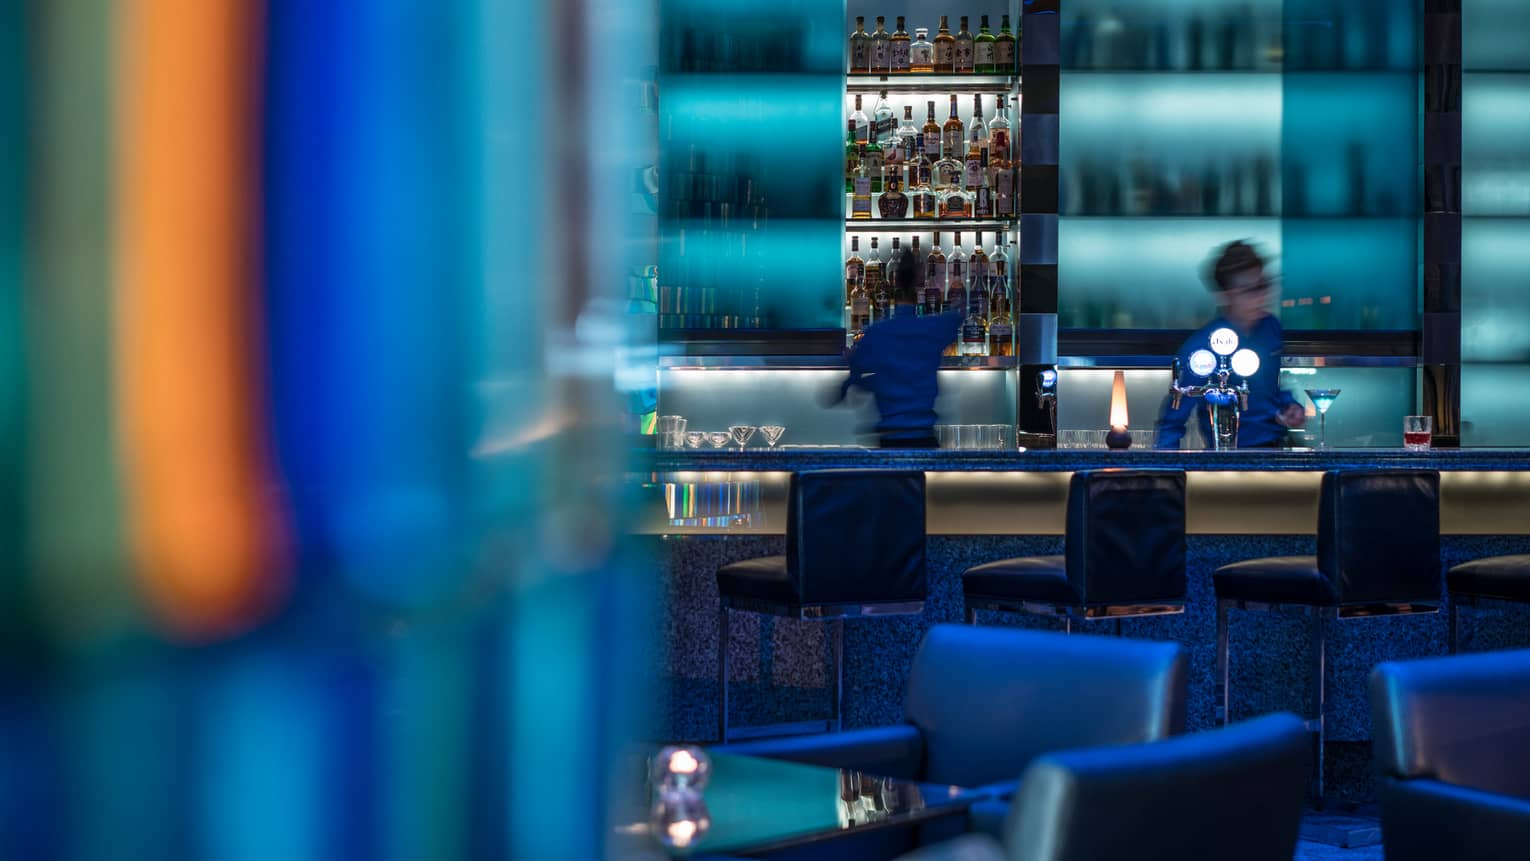 Bartenders behind illuminated blue bar, stools, colourful lights